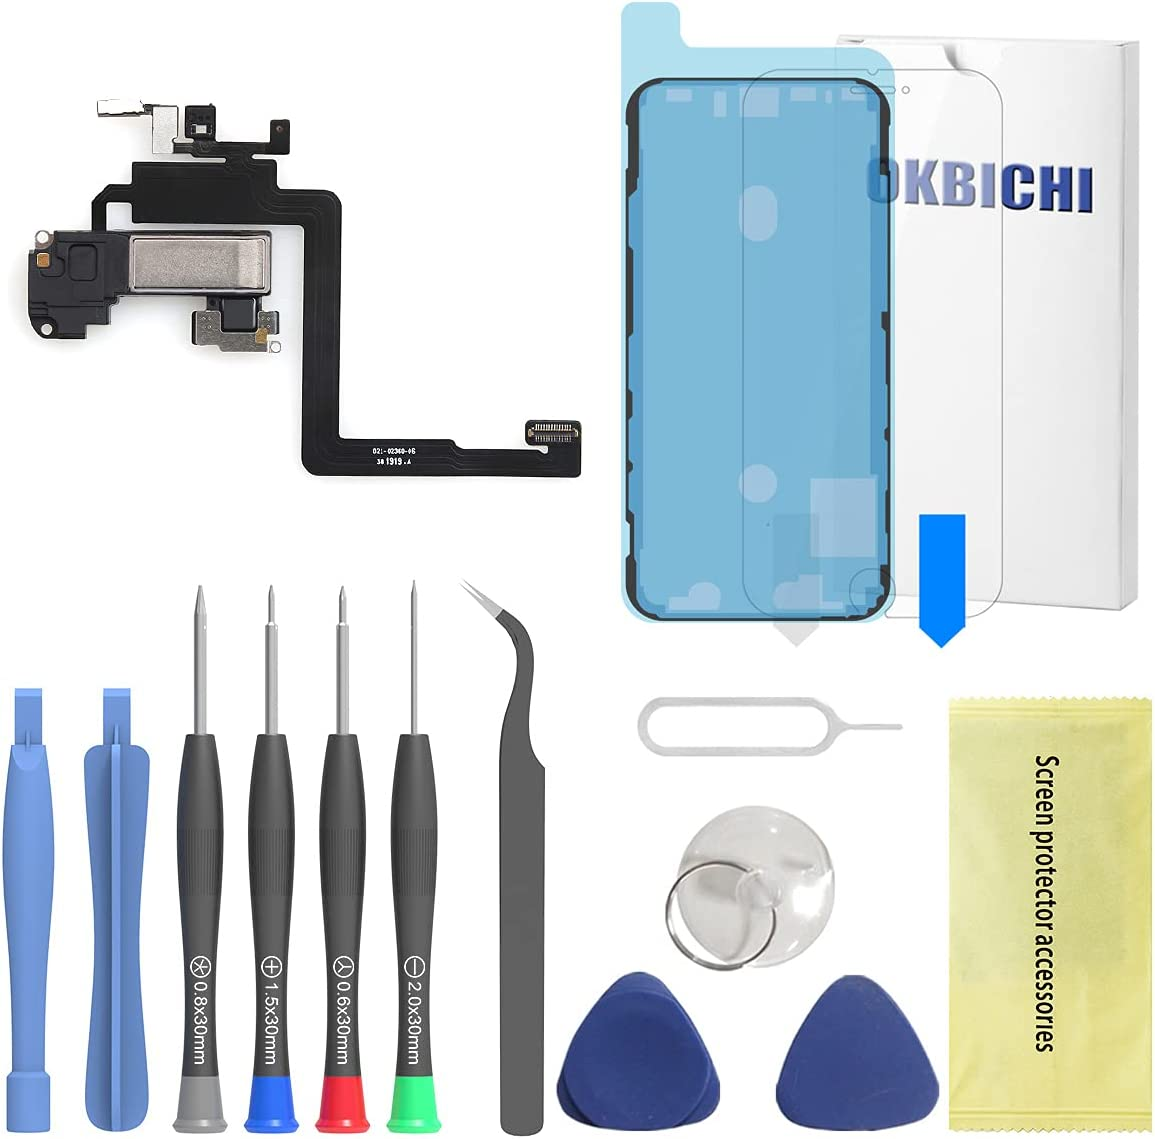 OKBICHI trend rank Earspeaker Replacement for iPhone Earpiece Sound outlet 11 Pro